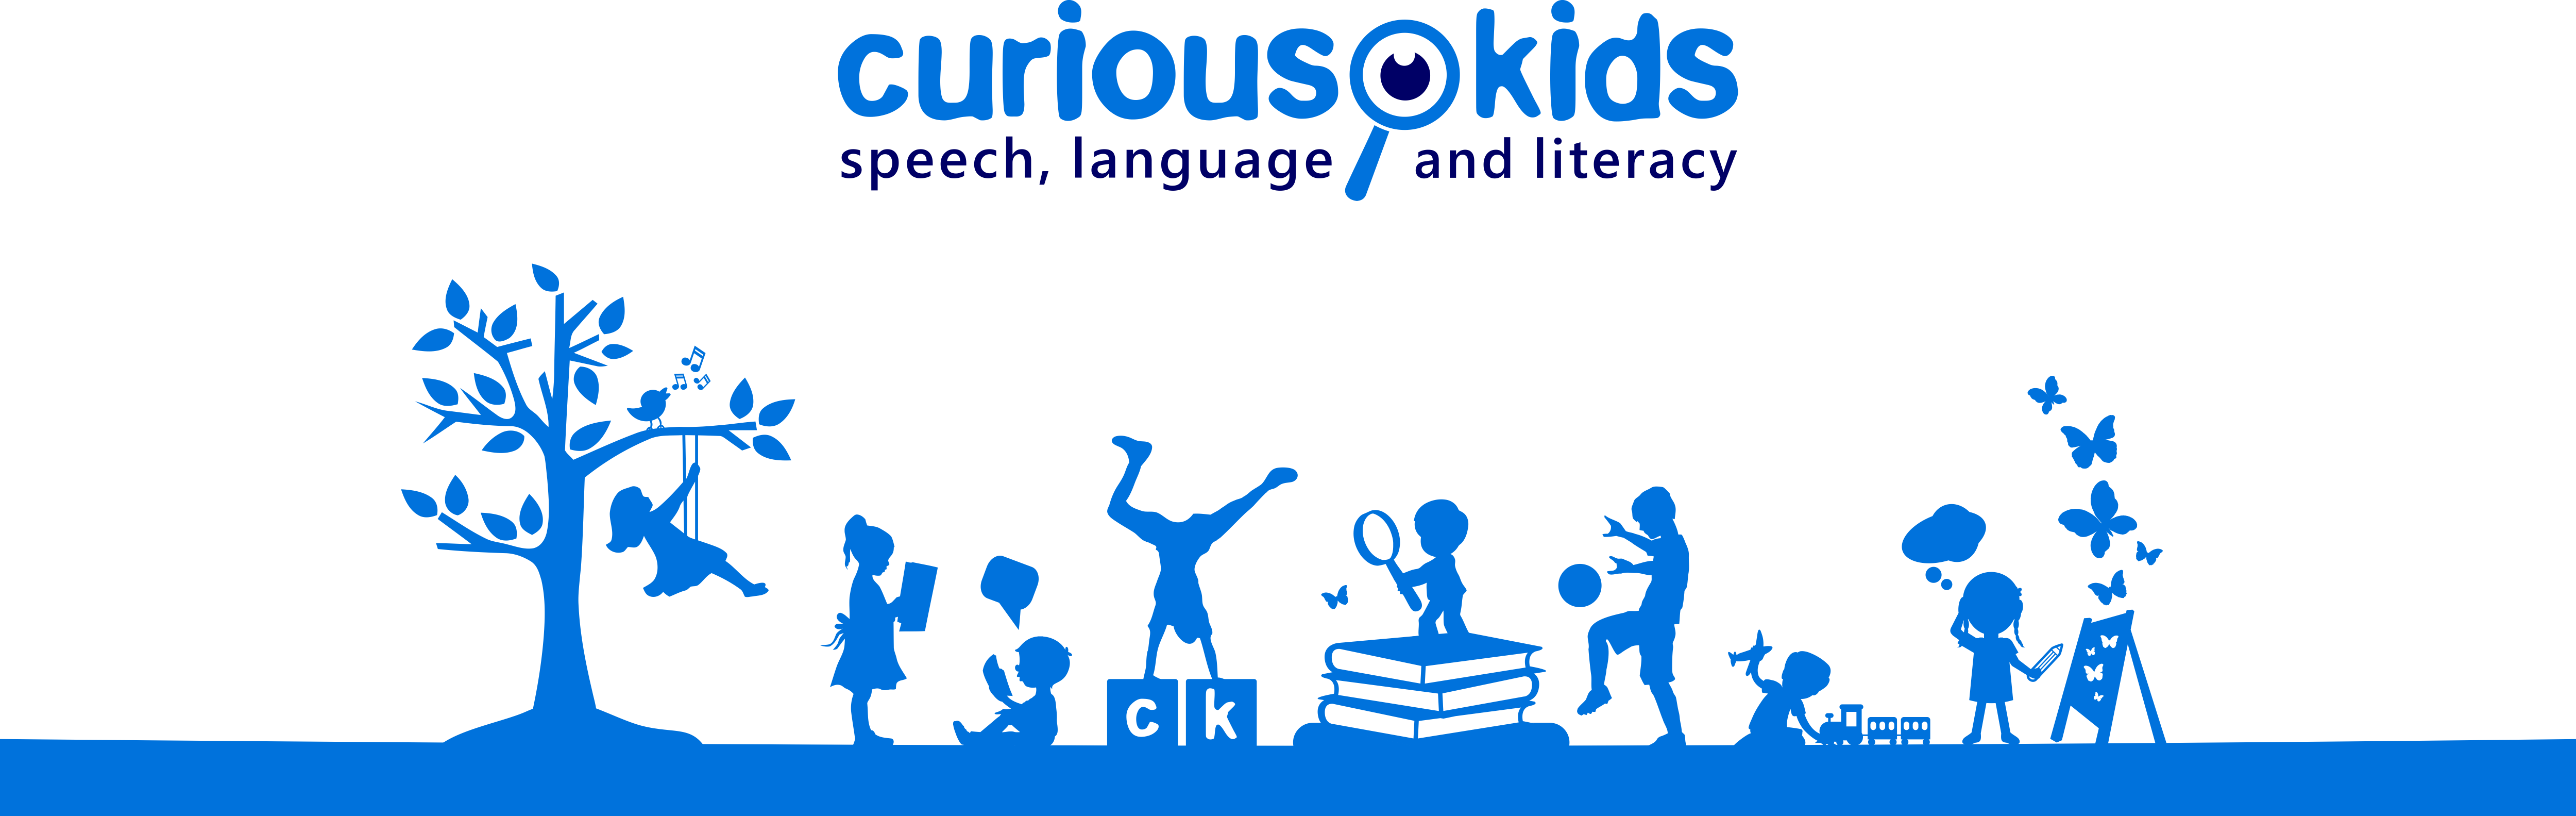 Create a fun silhouette style image for a children's speech pathology service.